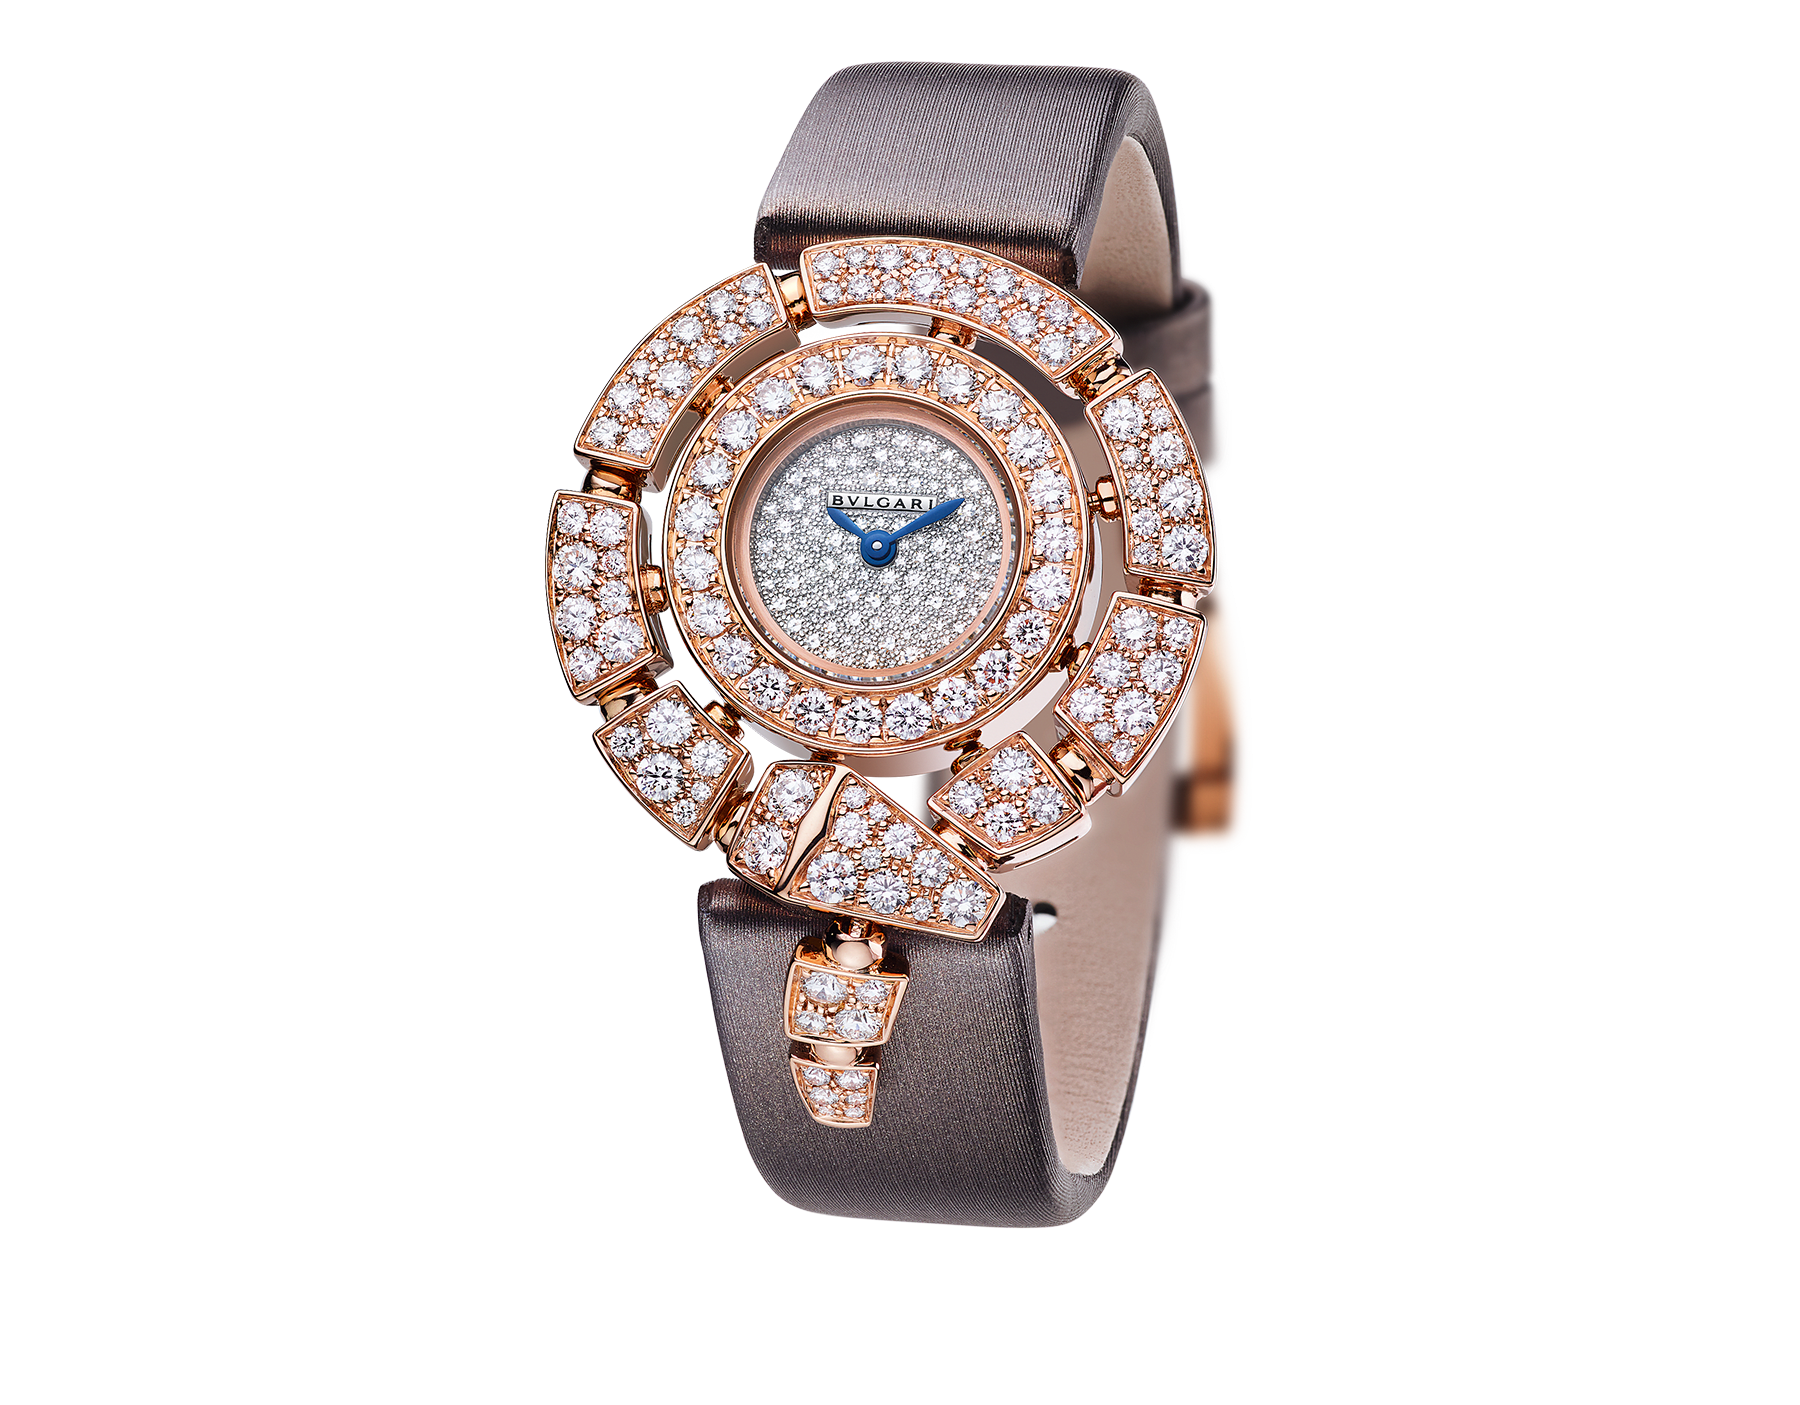 Serpenti Incantati watch with 18 kt rose gold case set with brilliant cut diamonds, snow-pavé diamond dial, grey satin bracelet. 102676 image 1